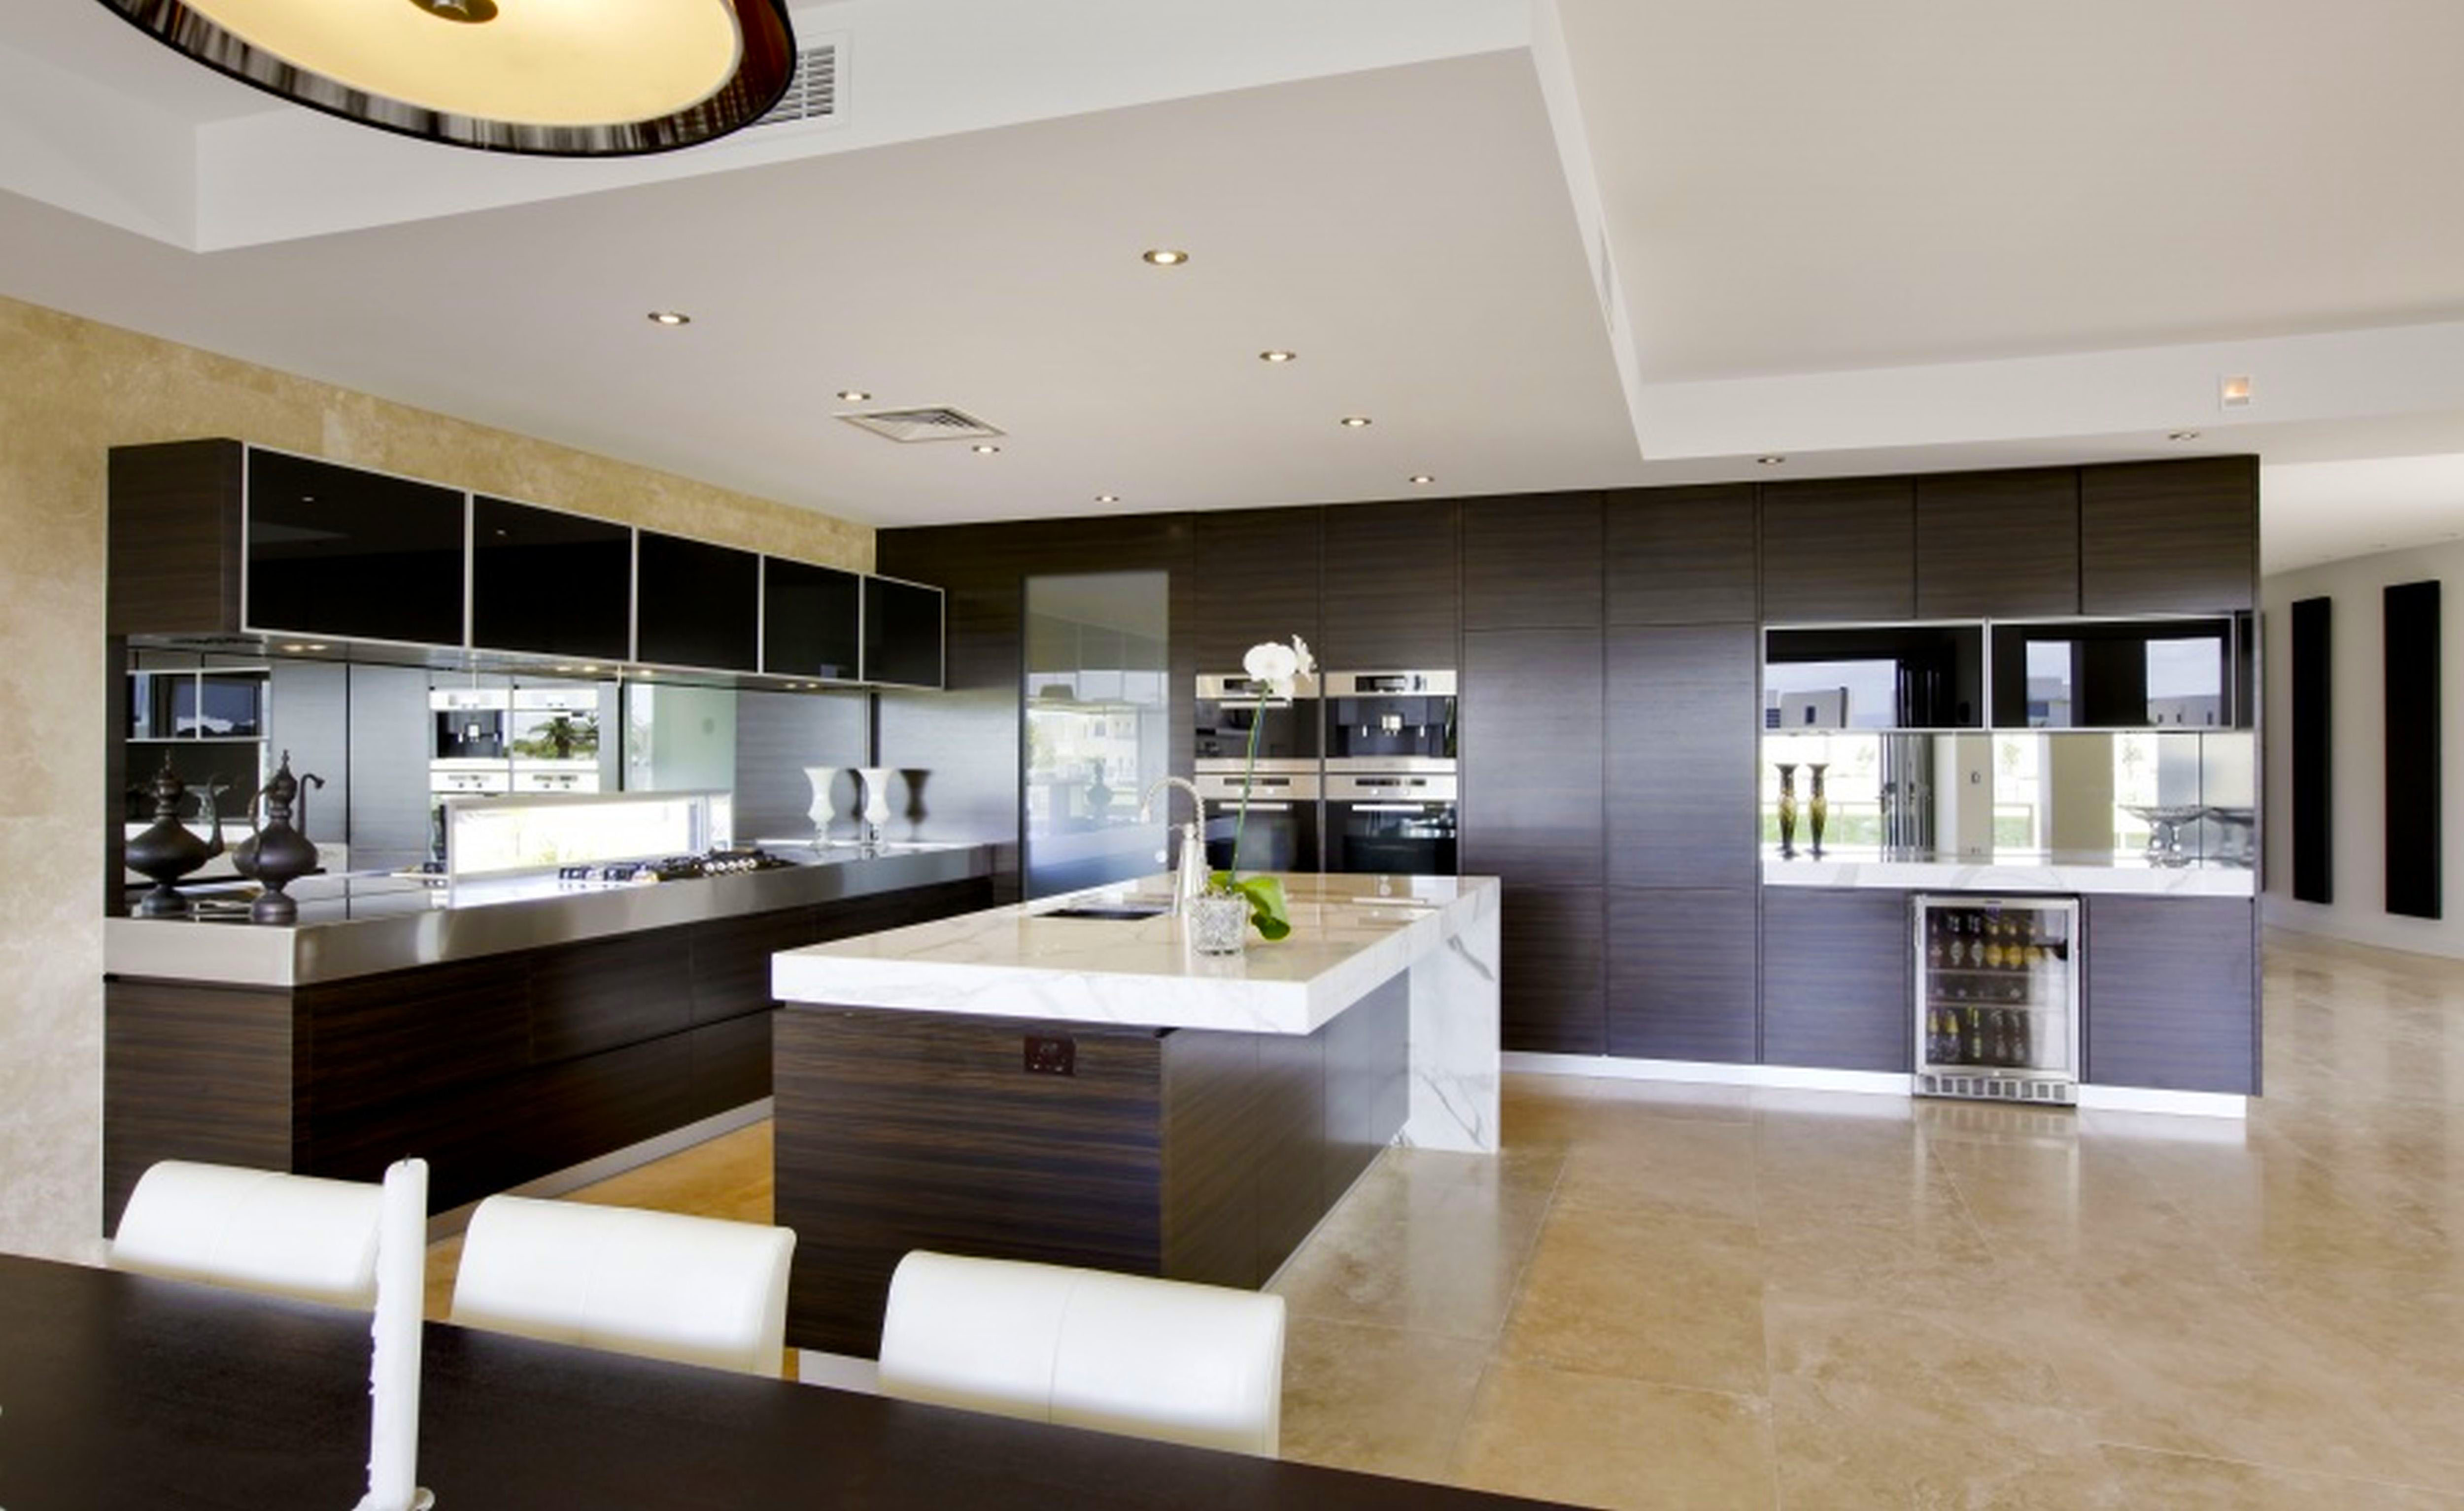 How to Remodel a Contemporary Kitchen Designs   Roy Home Design